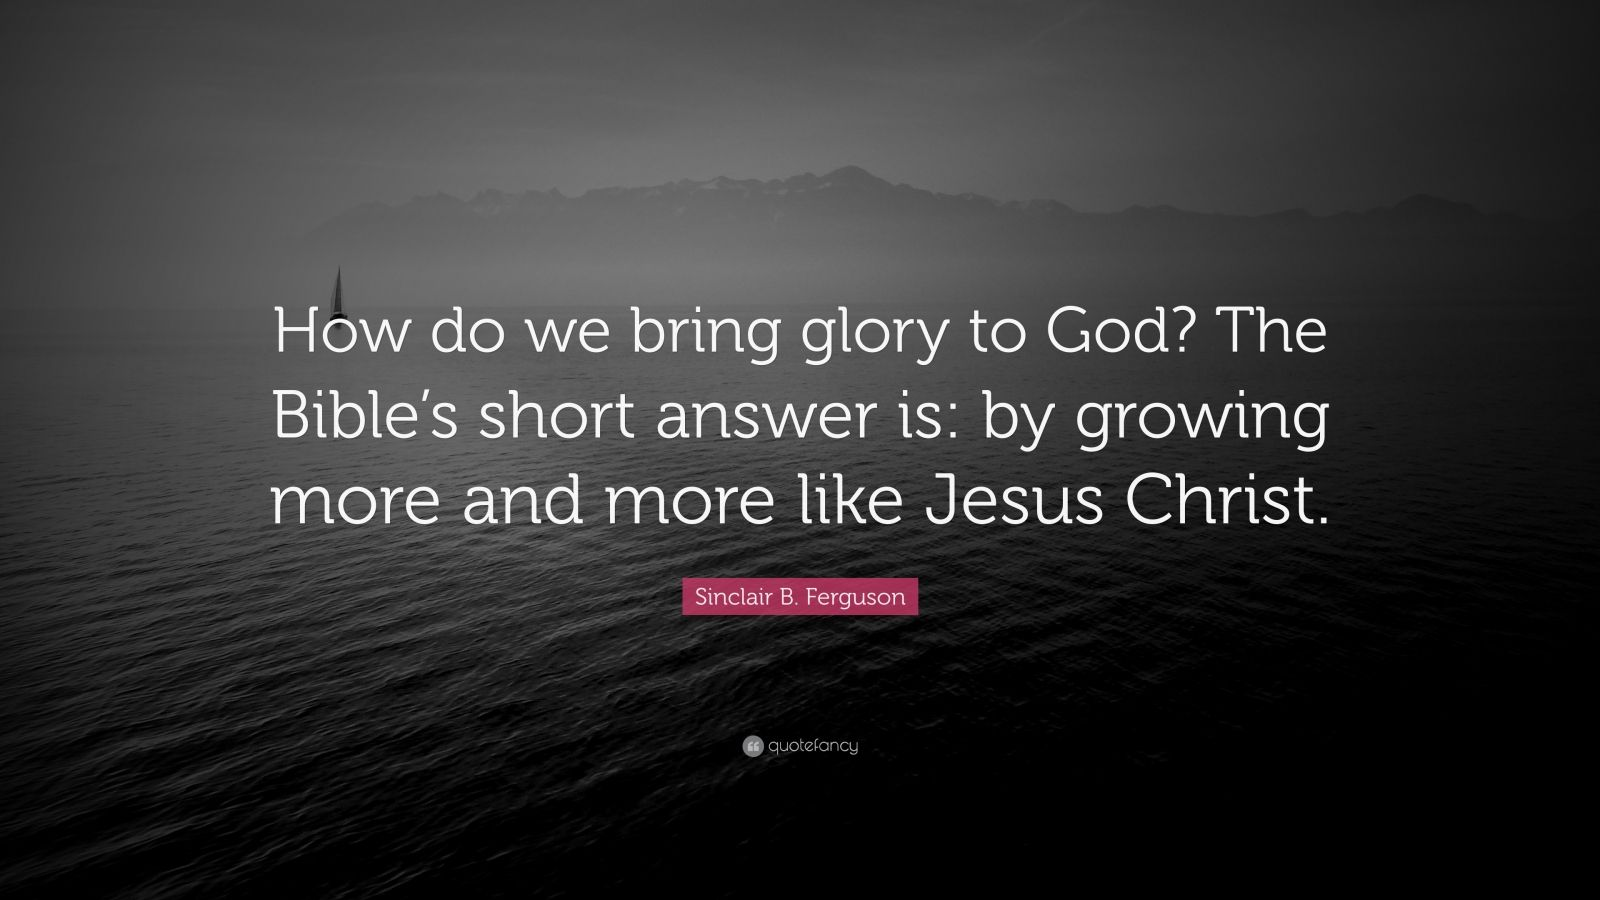 """Sinclair B. Ferguson Quote: """"How do we bring glory to God? The Bible's short answer is: by growing more and more like Jesus Christ."""""""